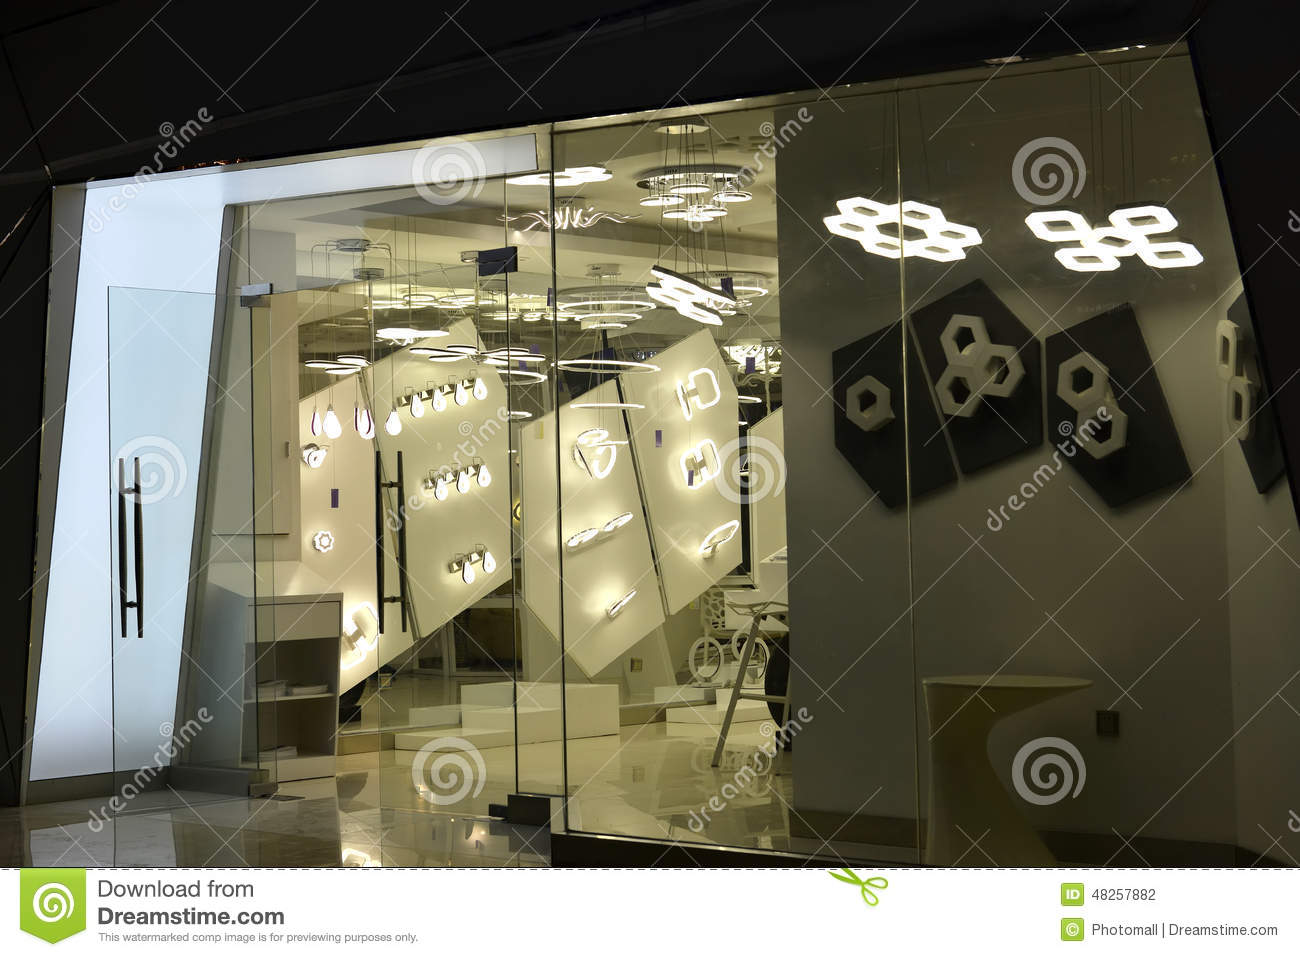 Led Wall China Led Lighting Shop Window Stock Photo Image Of Asia Display